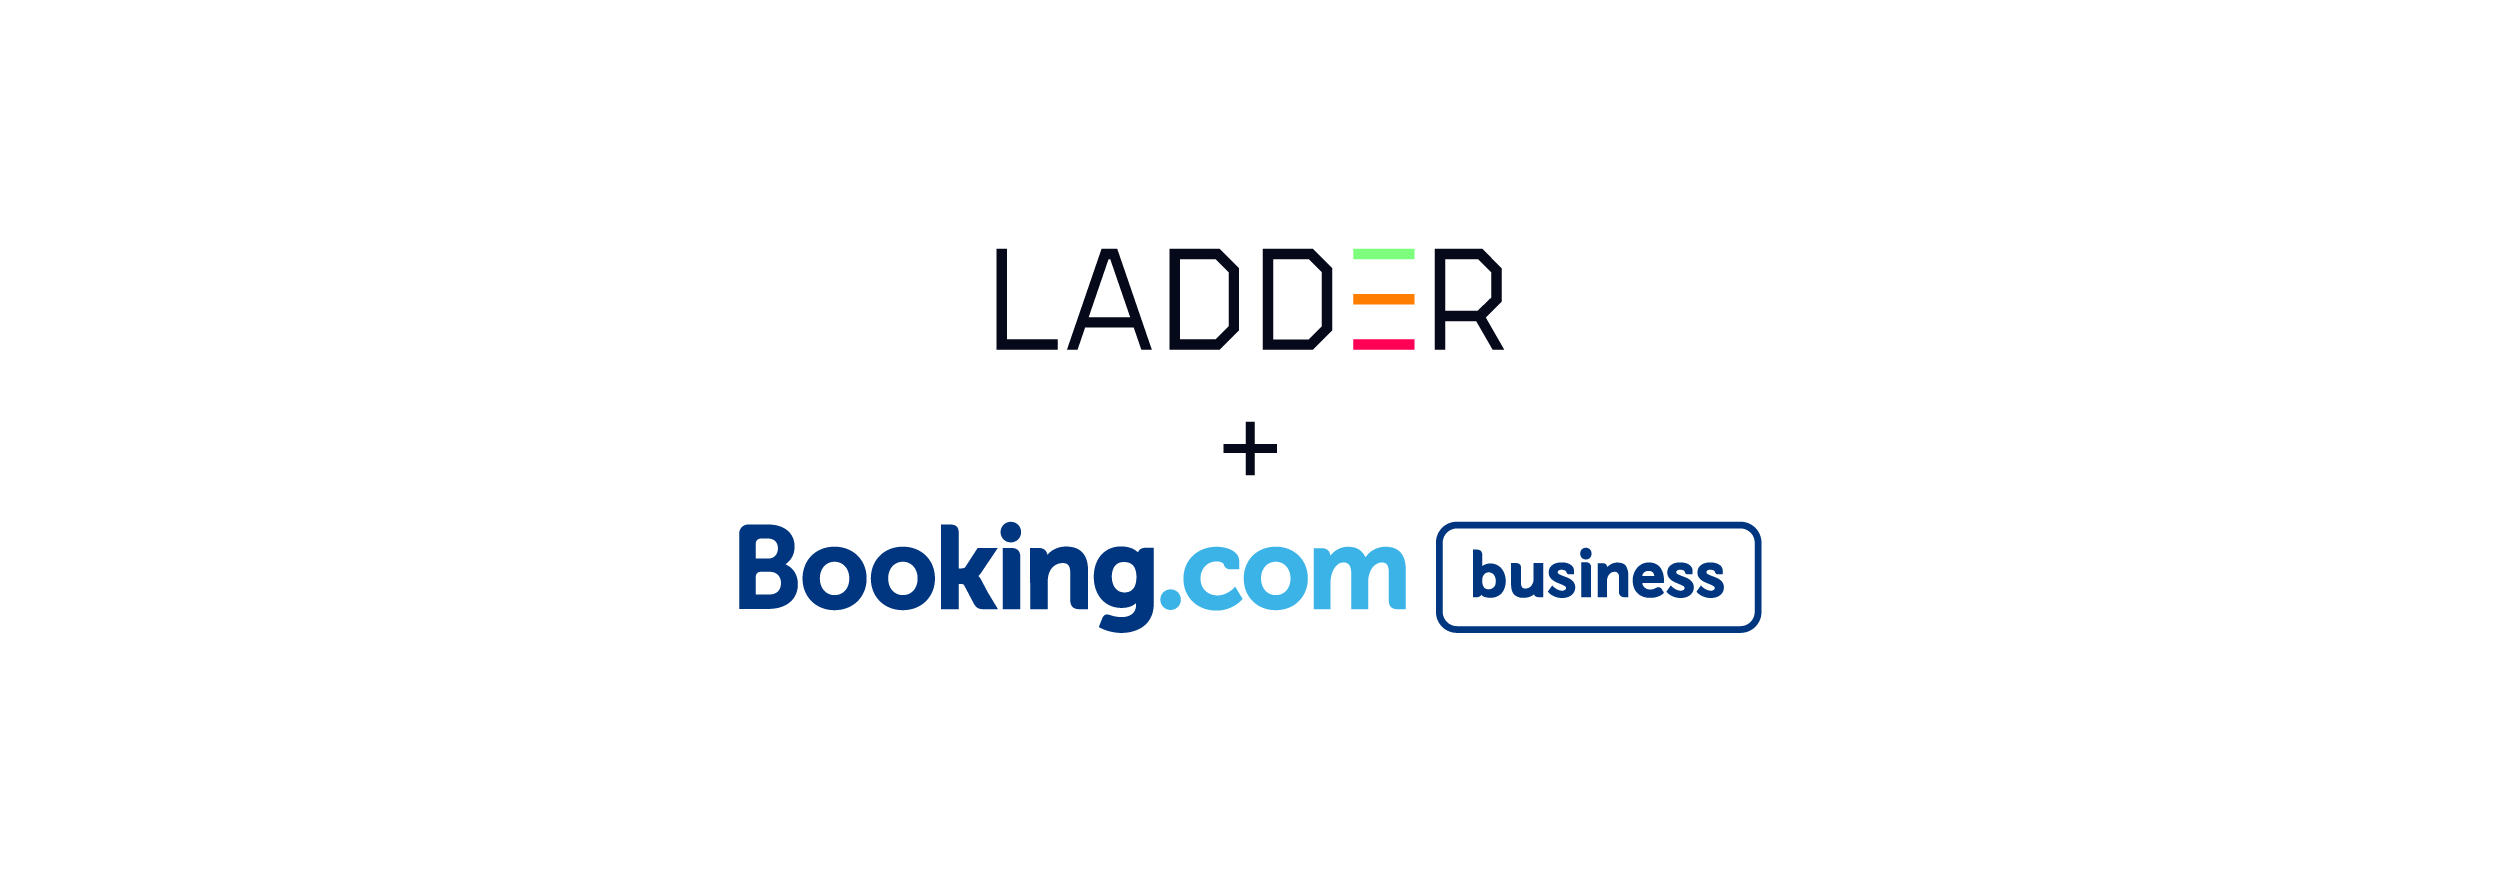 We Audited Booking.com for Business and Found 100+ Growth Opportunities